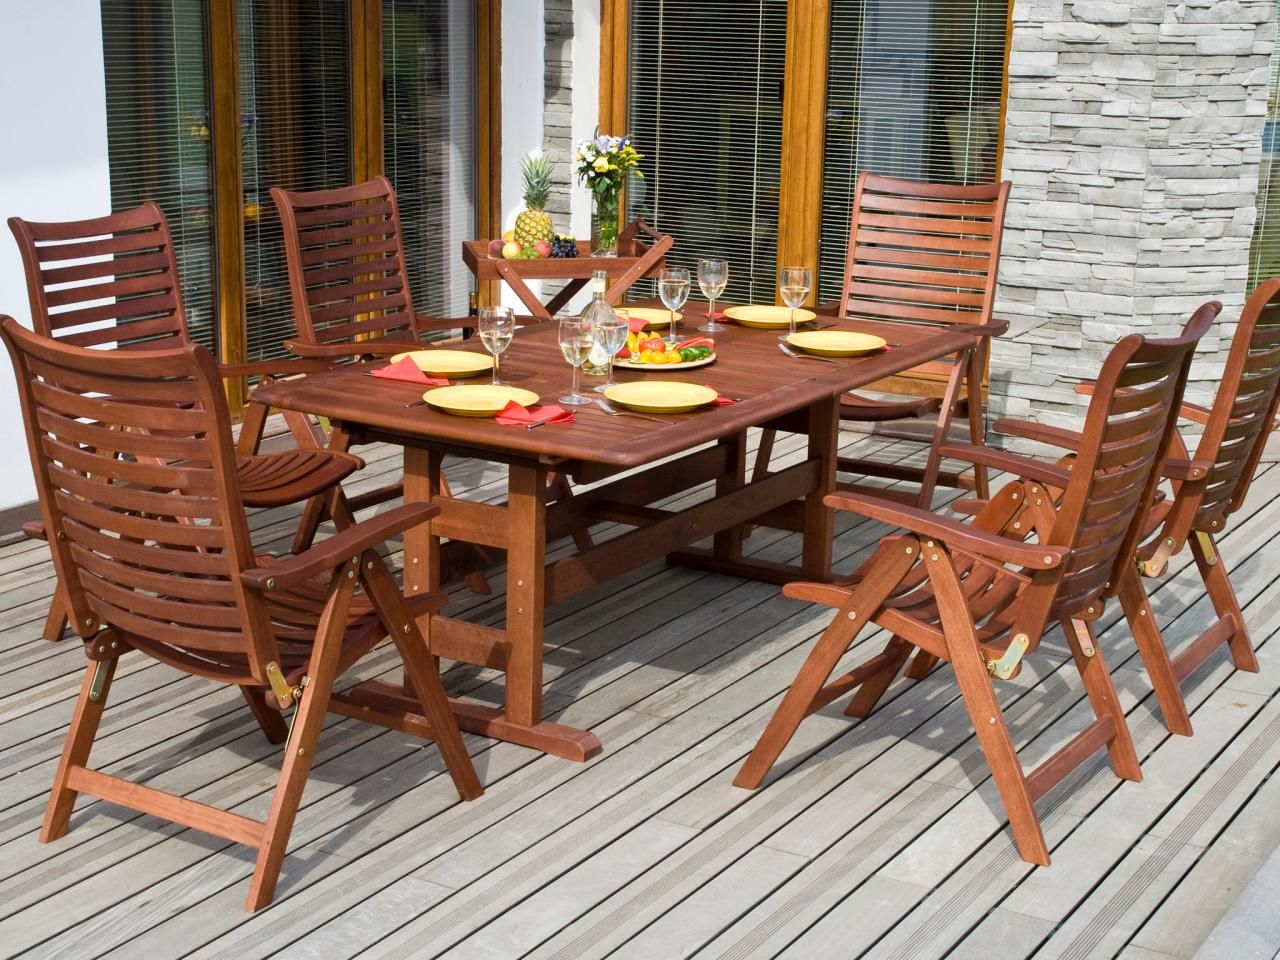 Teak Wood Furniture Folding Chairs Tables Deck Clearance Closeout Patio Modern Occasional Accent All